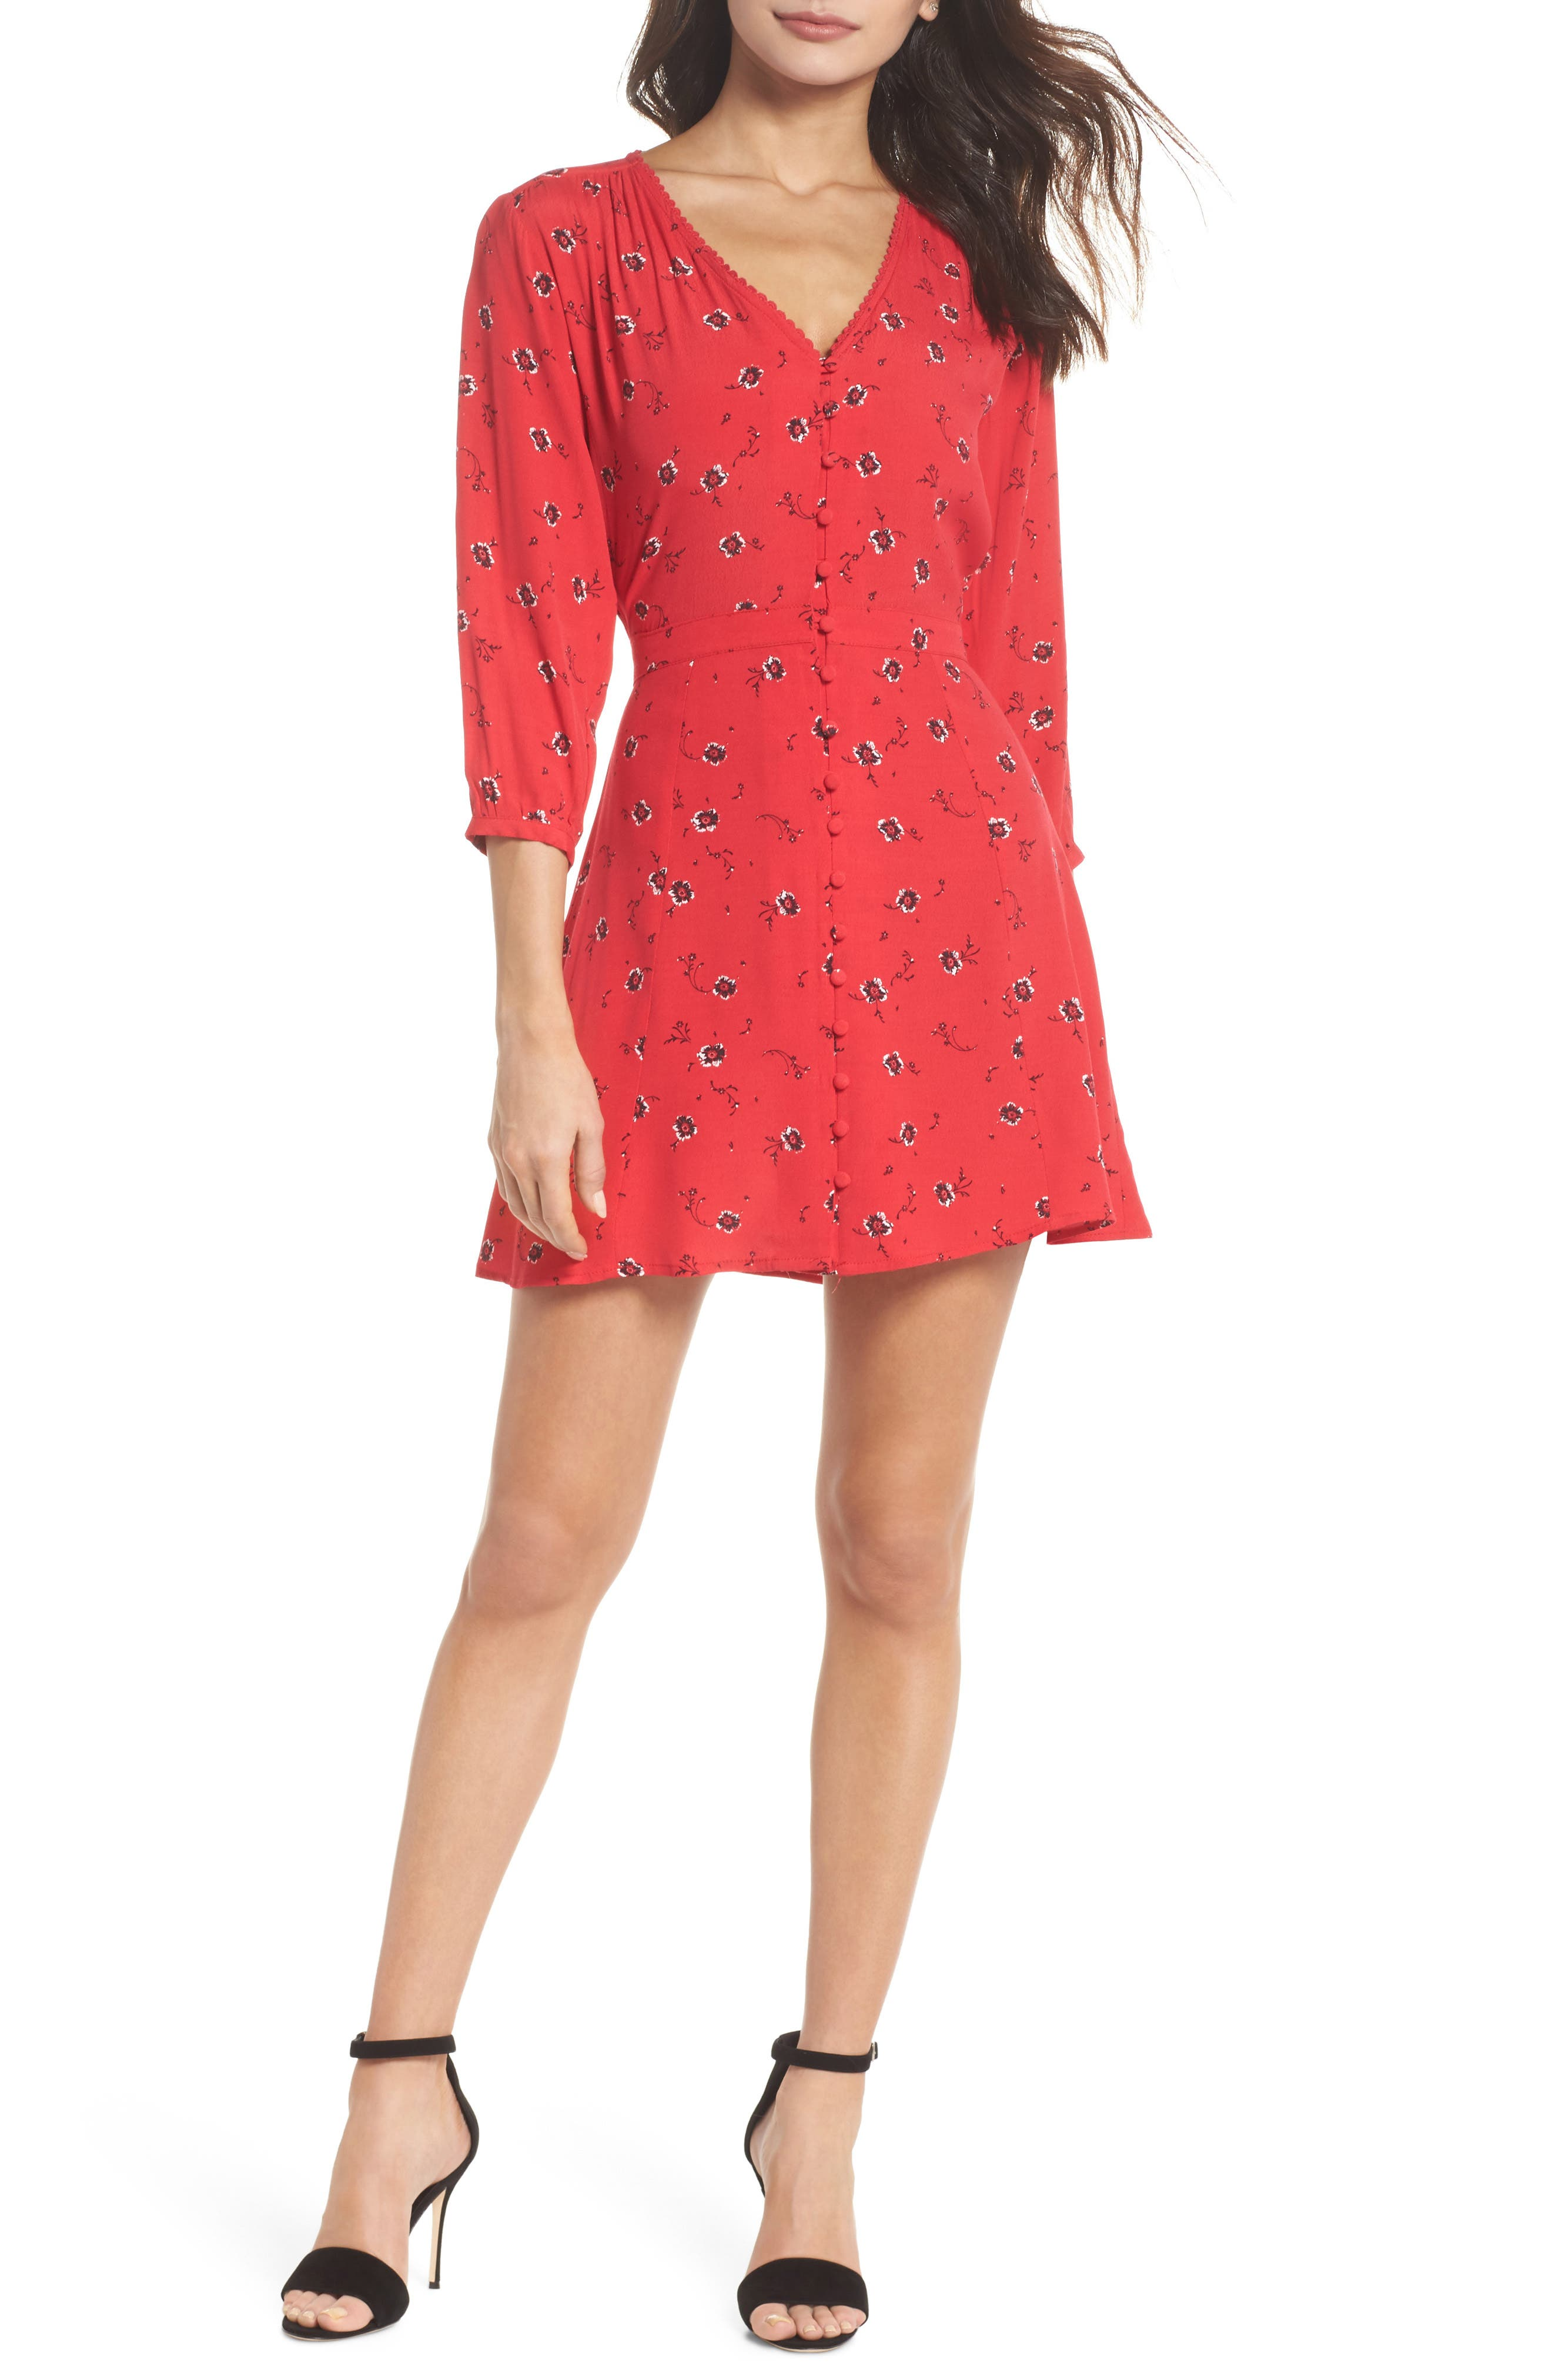 Alternate Image 1 Selected - Knot Sisters Luella Floral Print Dress